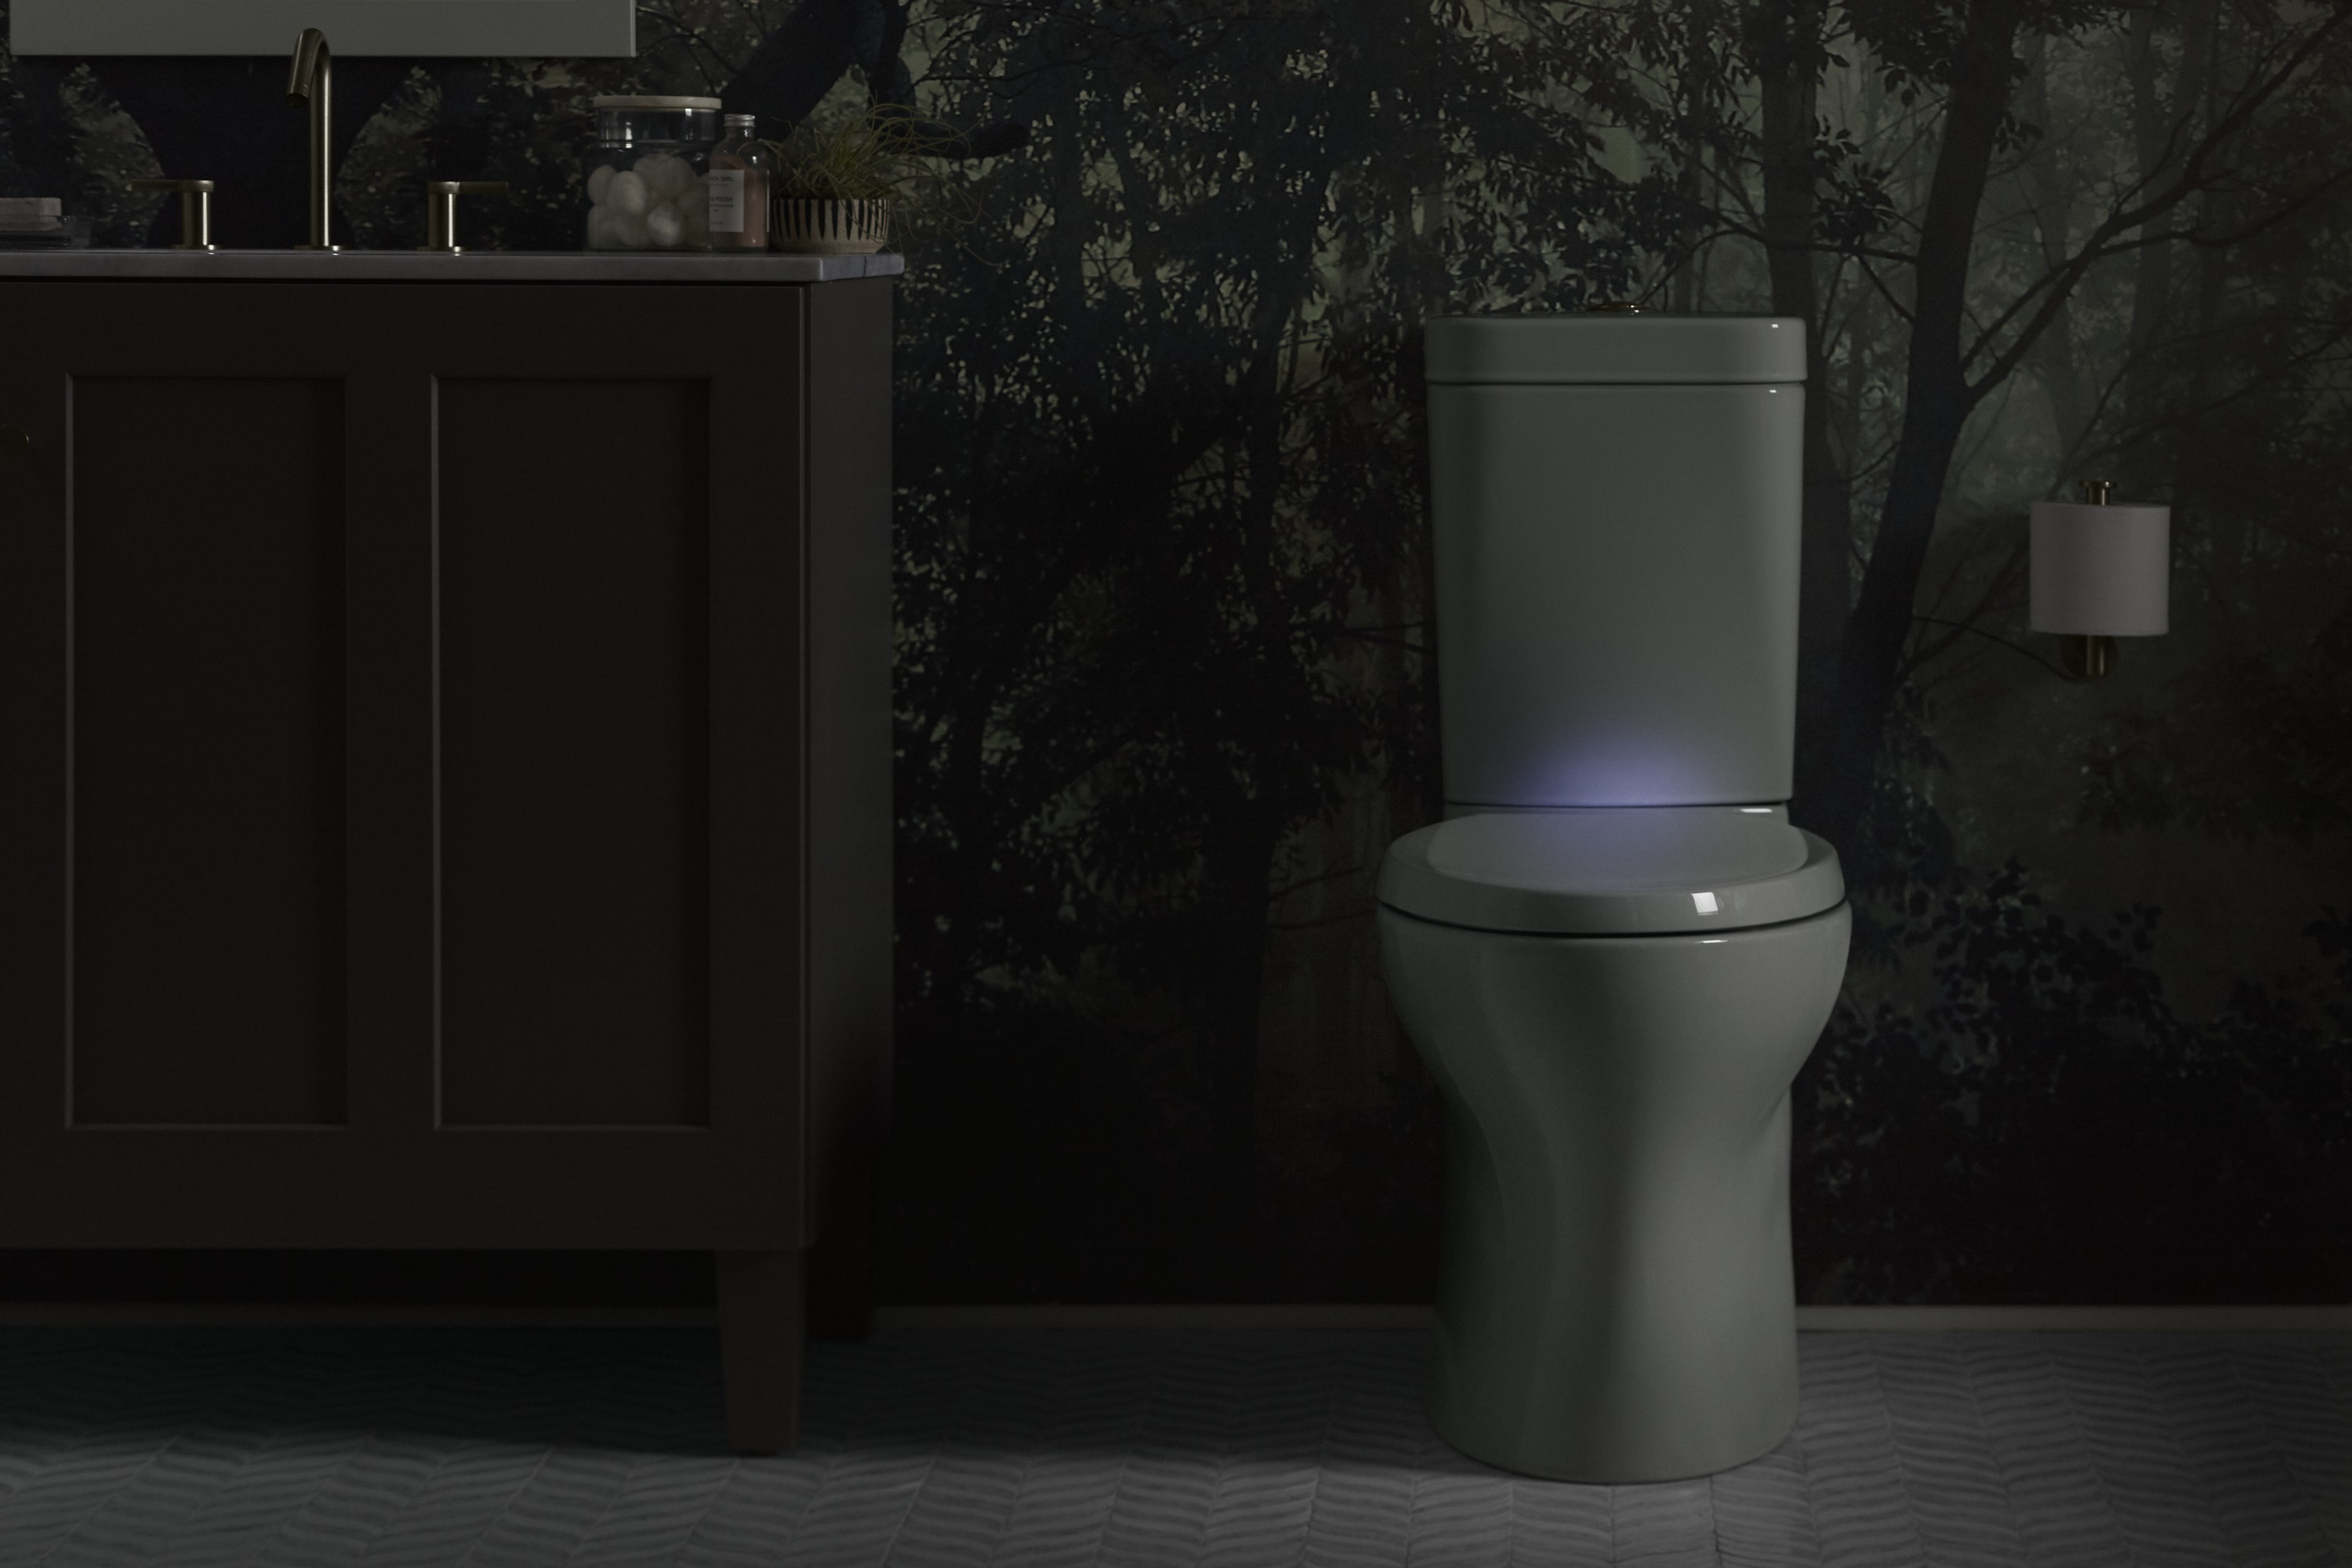 Persuade® Circ toilet     Reveal® toilet seat     Stillness® toilet tissue holder     A toilet seat with a built-in nighlight helps guide you safely and comfortably, even on the darkest nights.